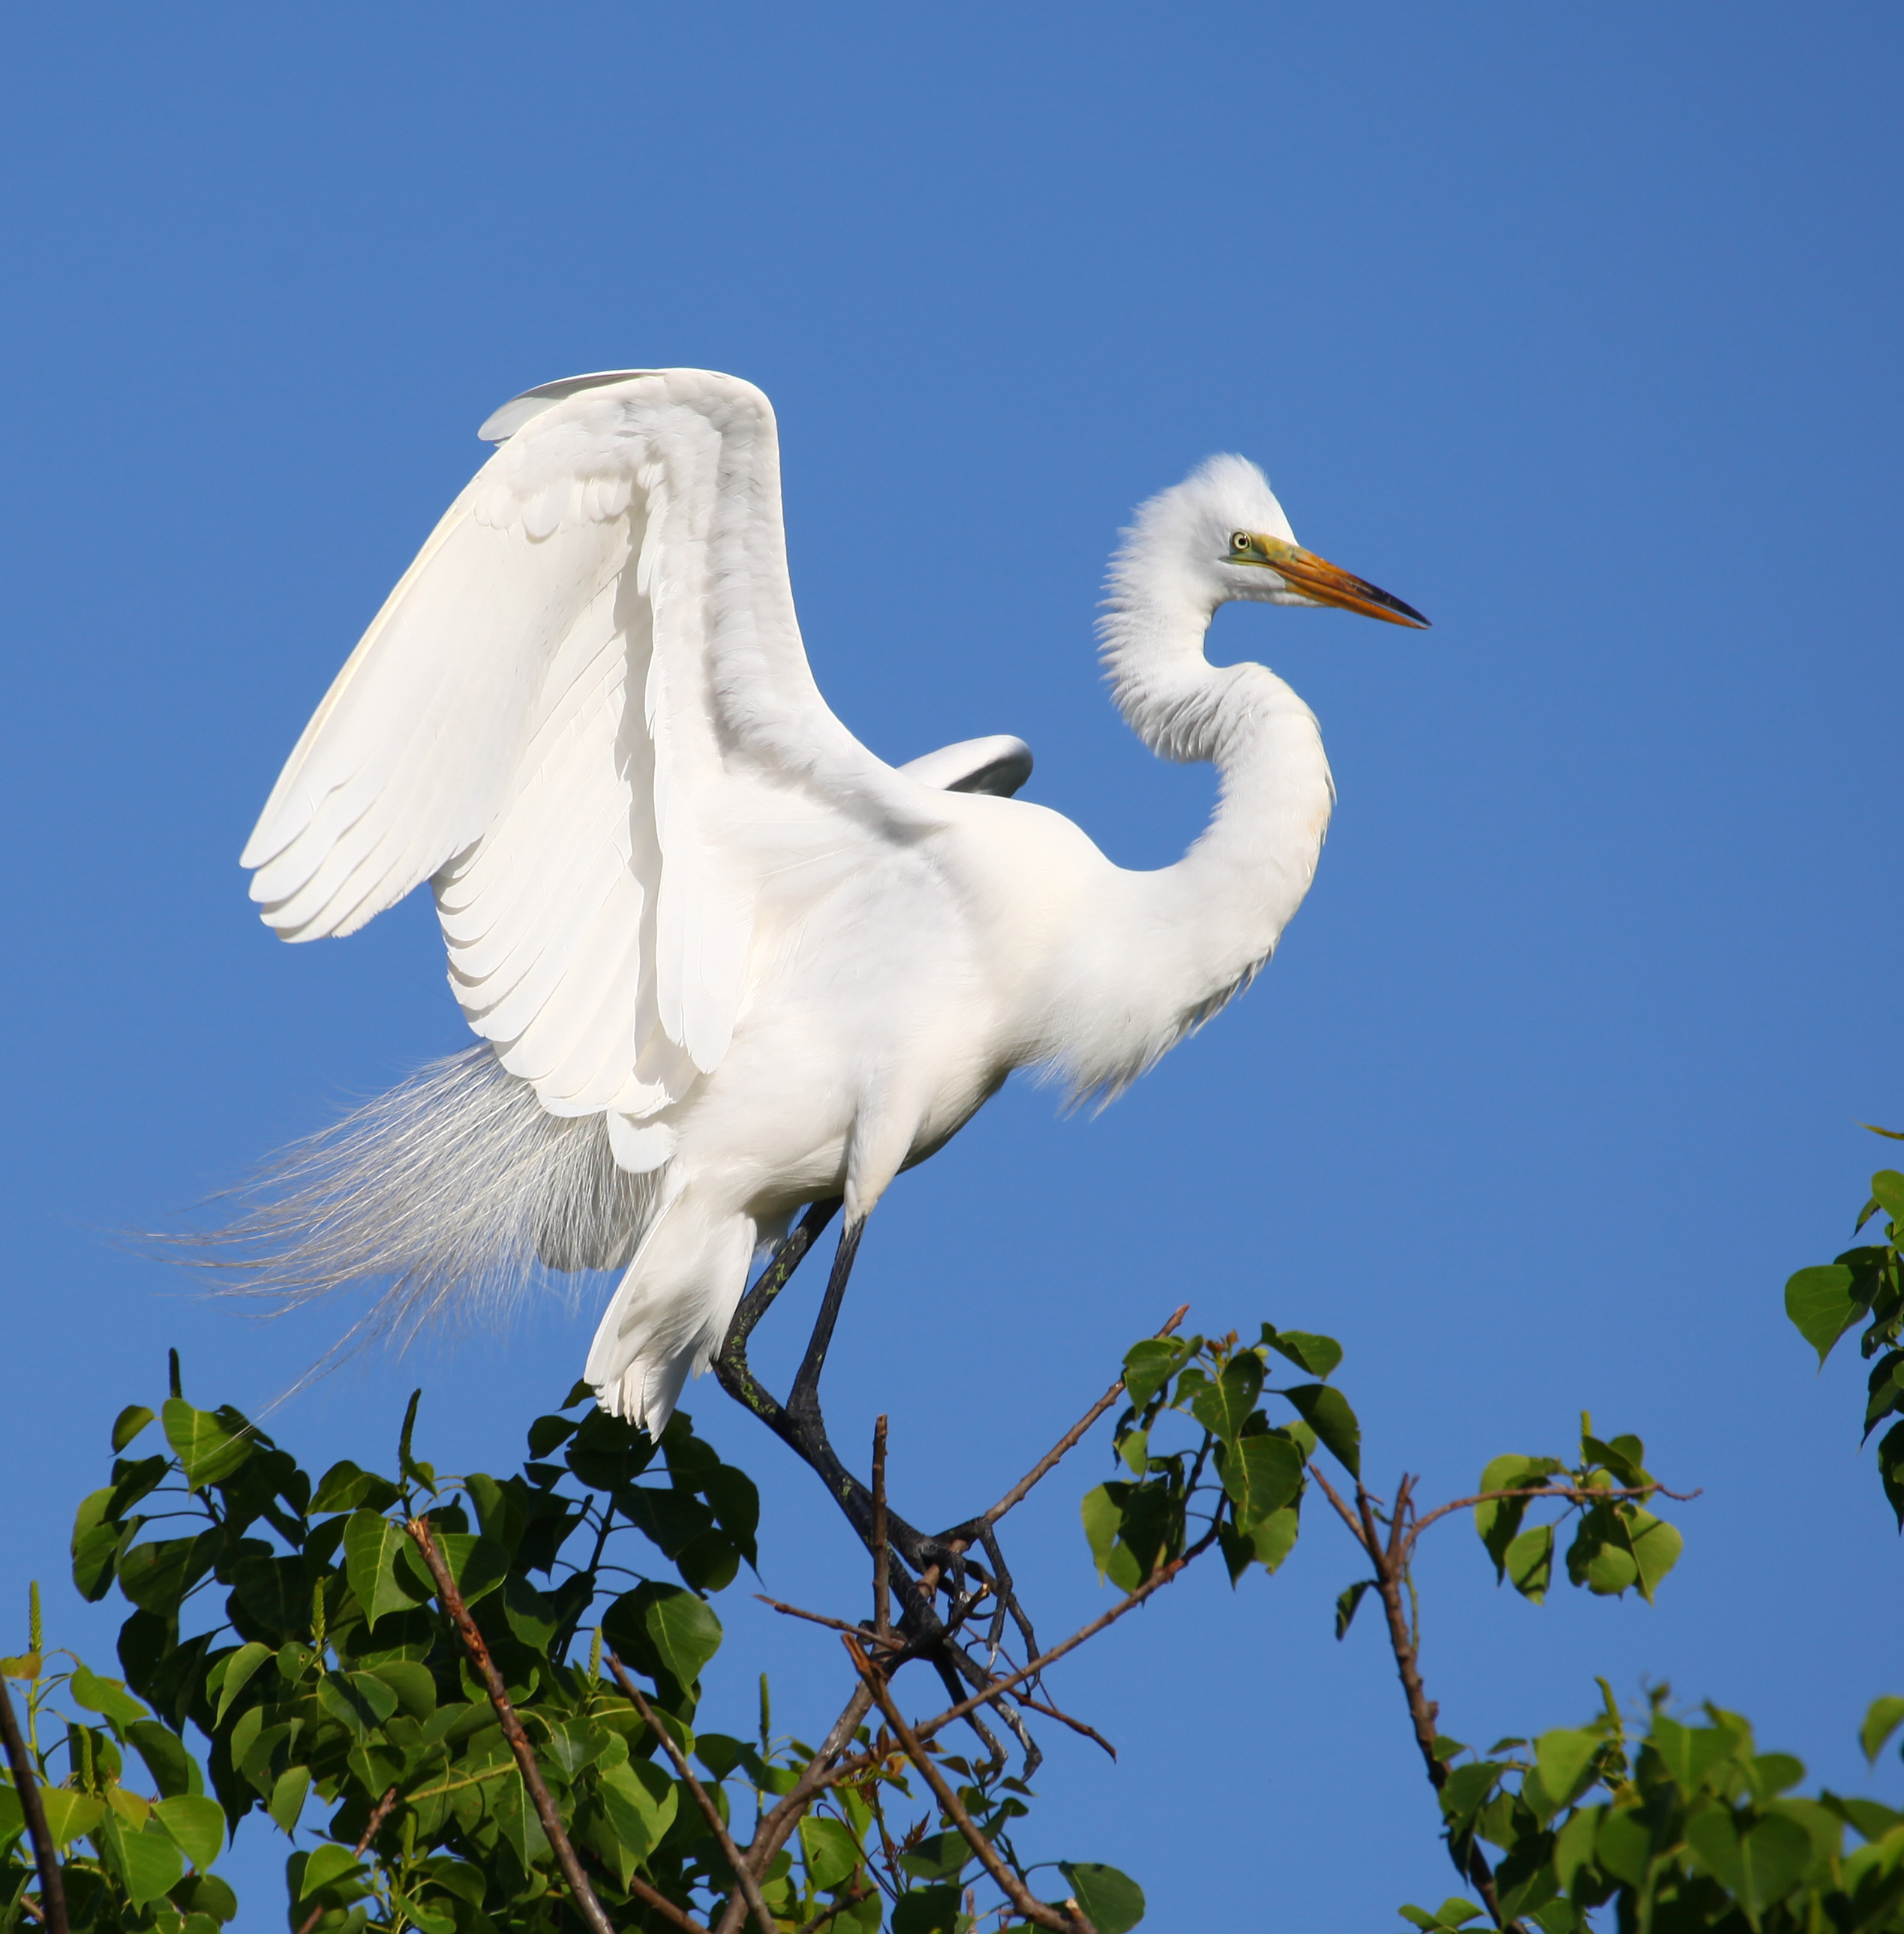 Great White Egret Artwork Collection